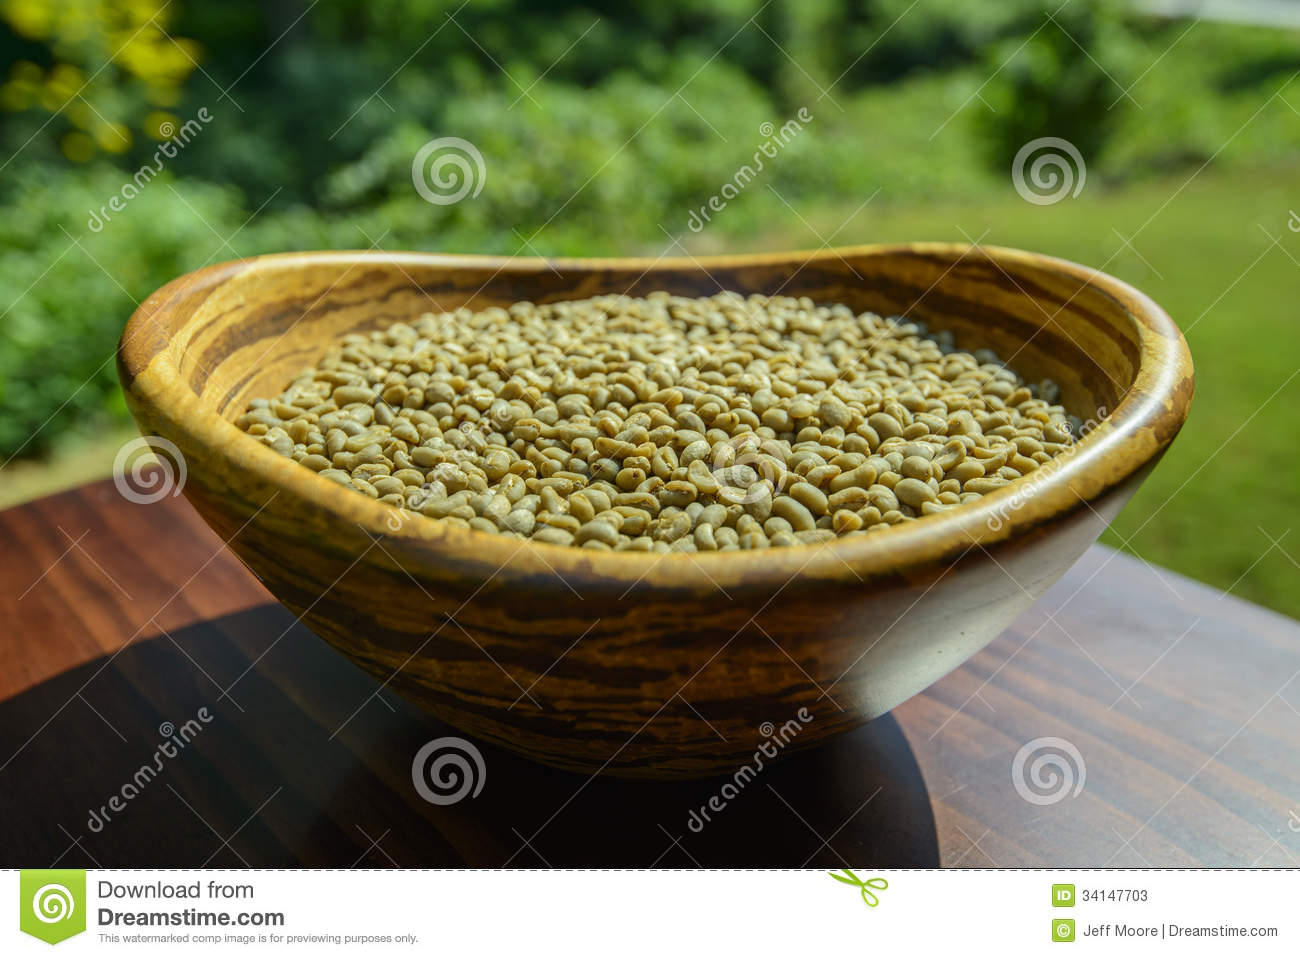 Unroasted Organic Arabica Coffee Beans Green Unroasted Coffee Beans In A Bamboo Bowl Stock Photos